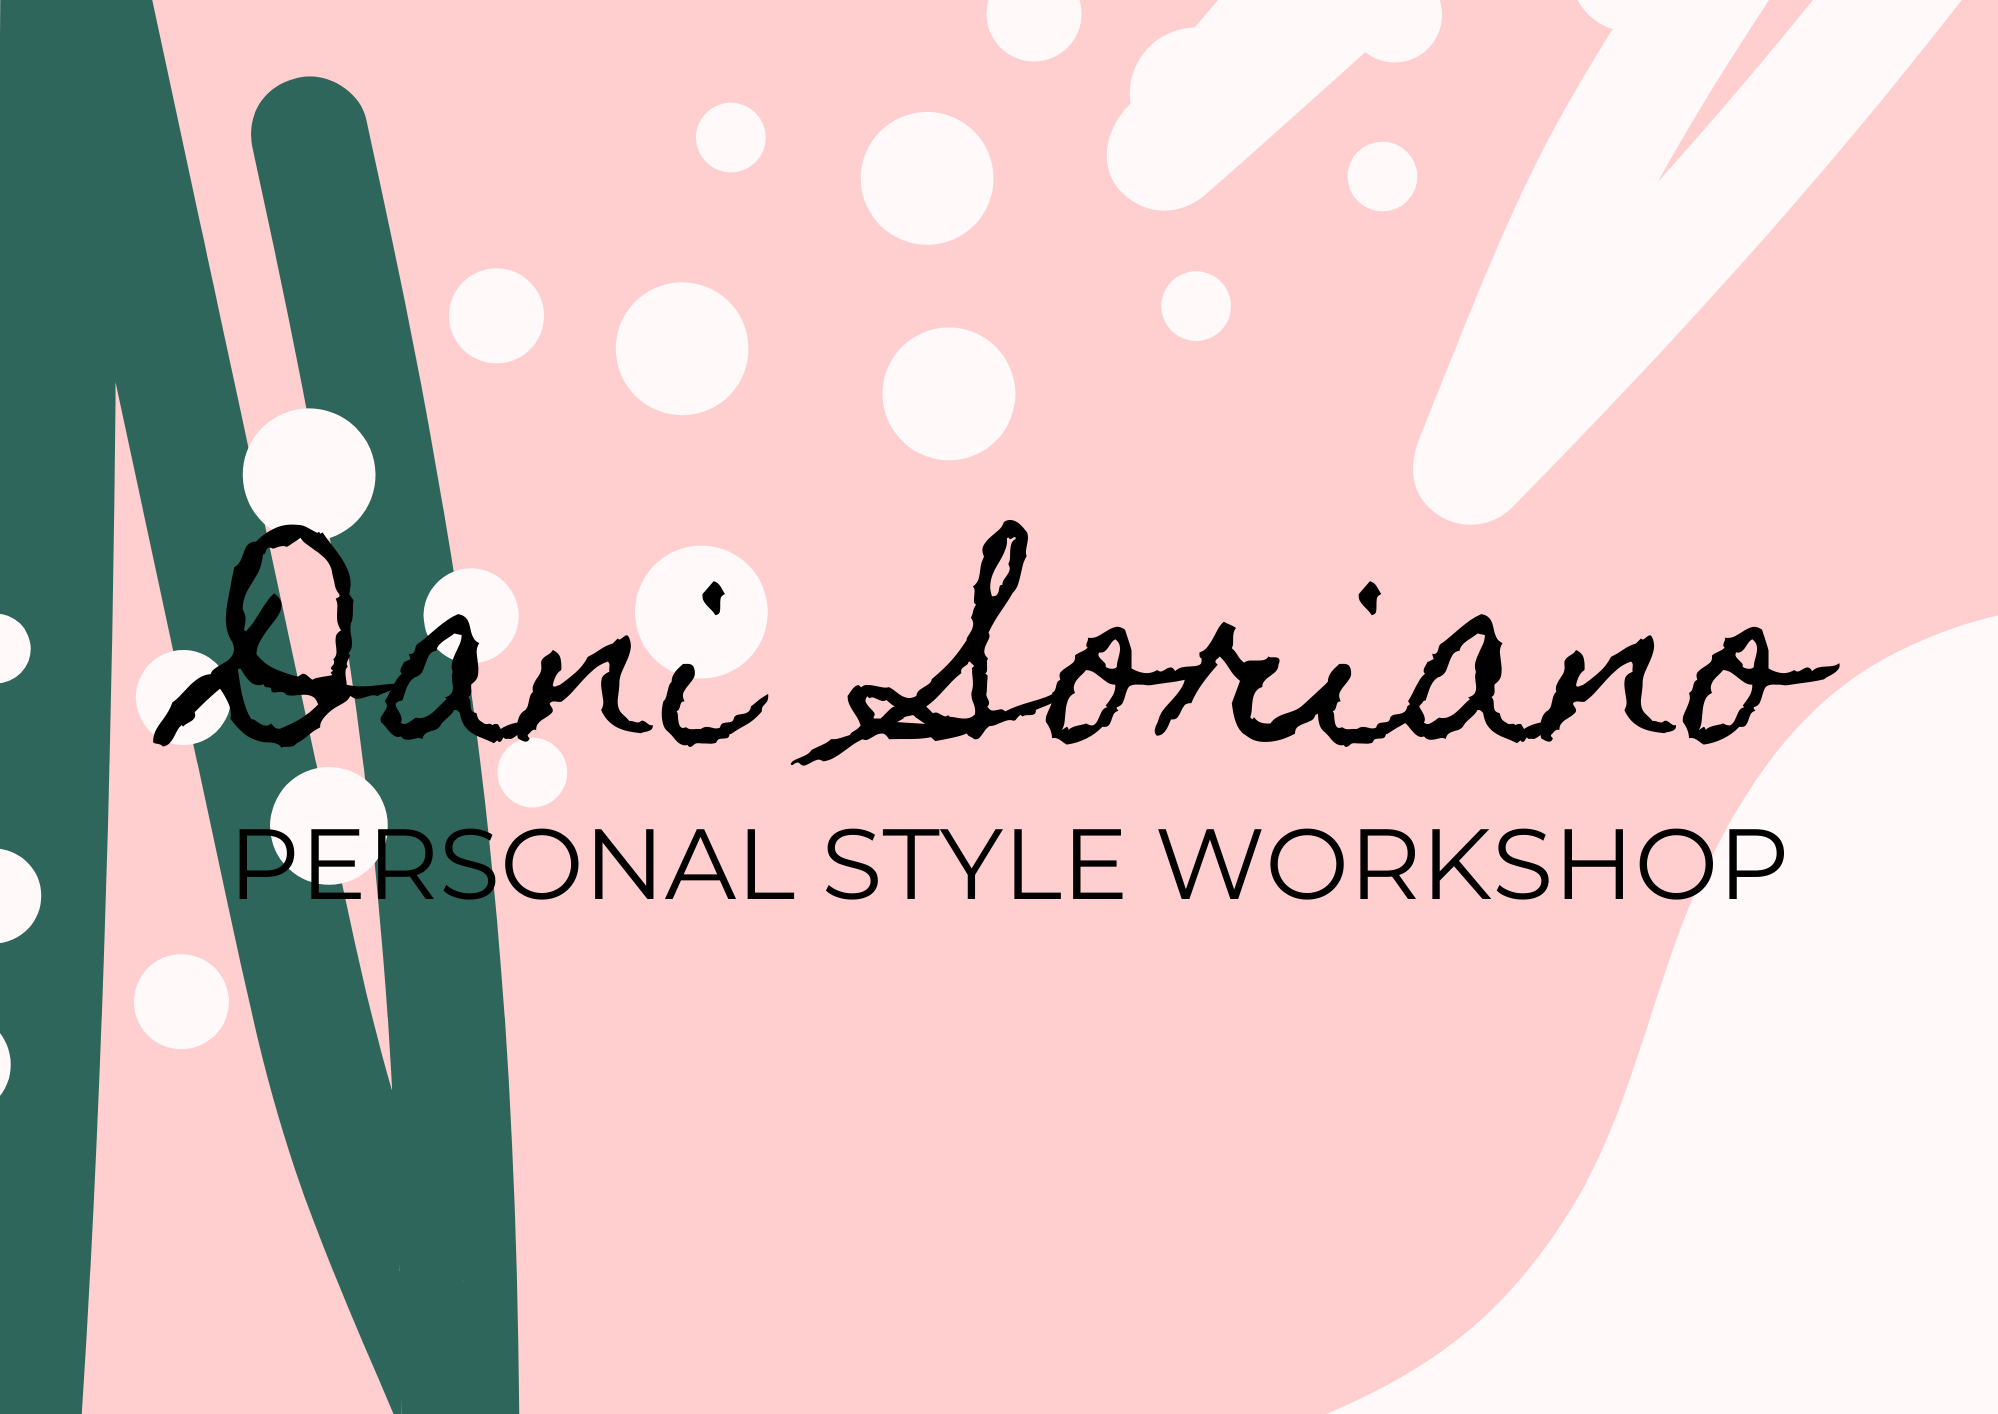 Personal Style Workshop